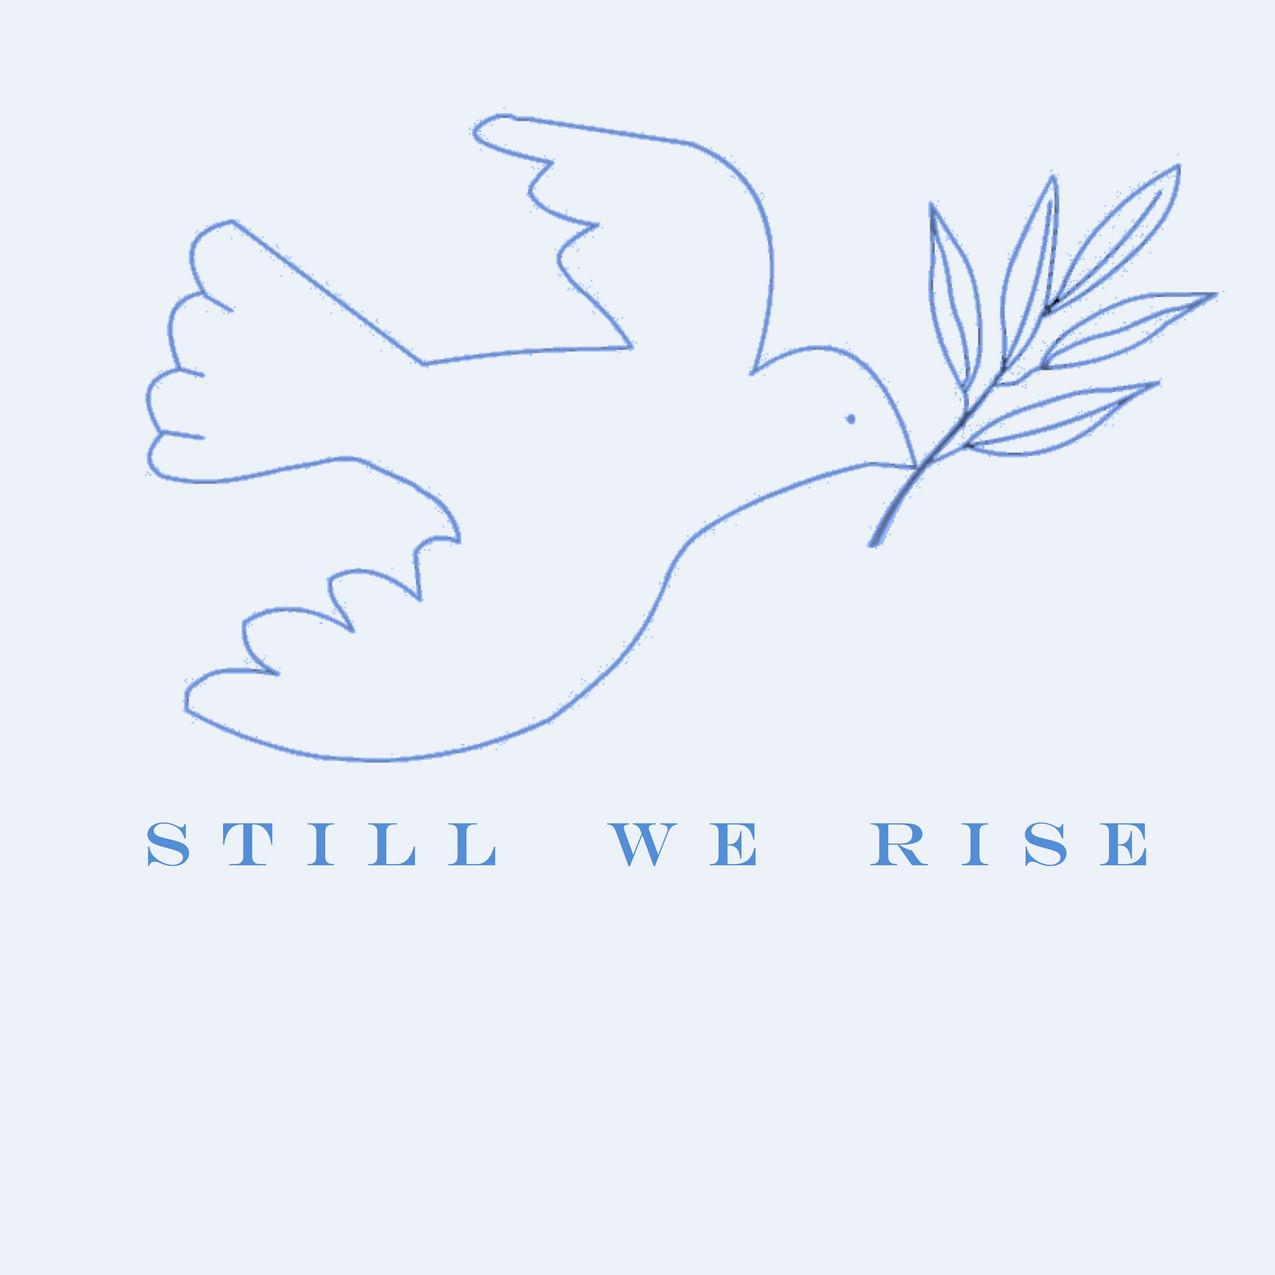 Blakely Hiner Still We Rise 1 copy